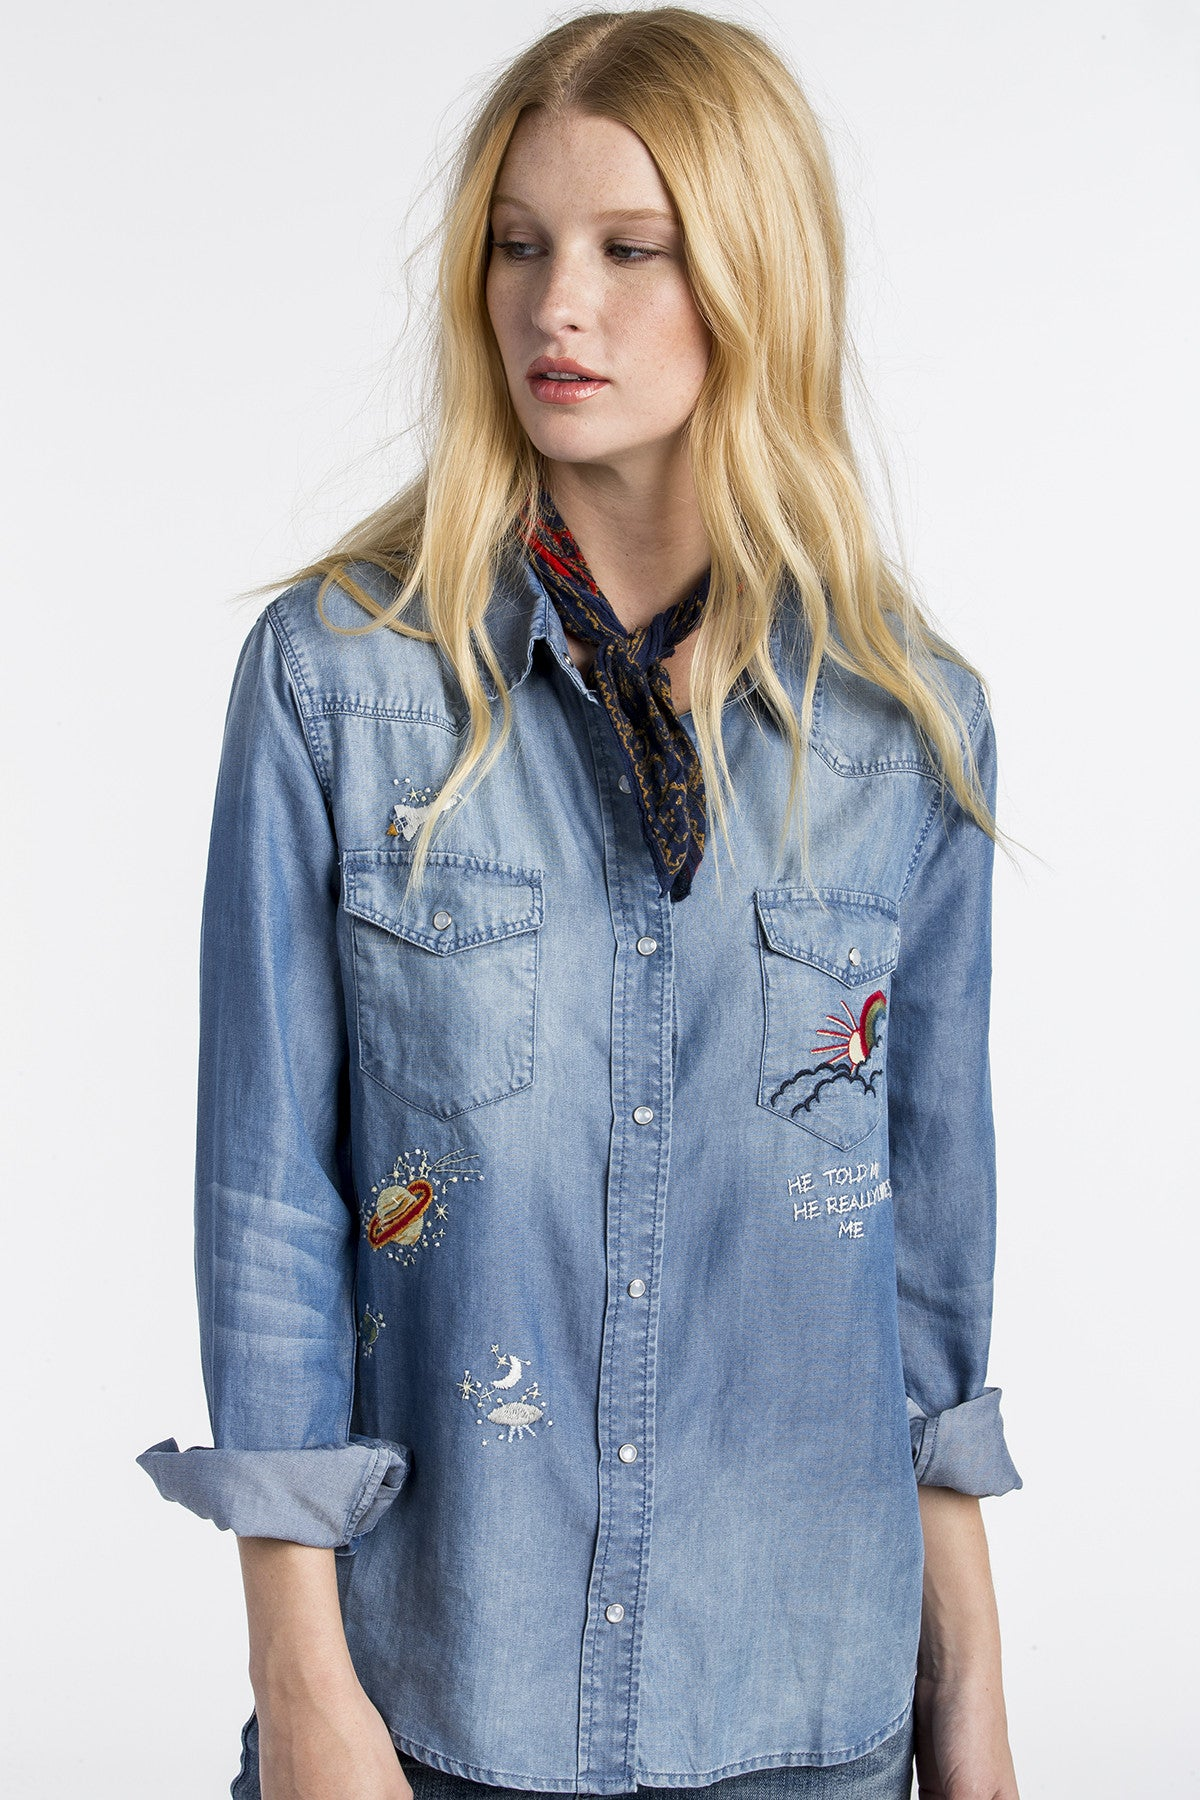 Out Of This World Denim Top